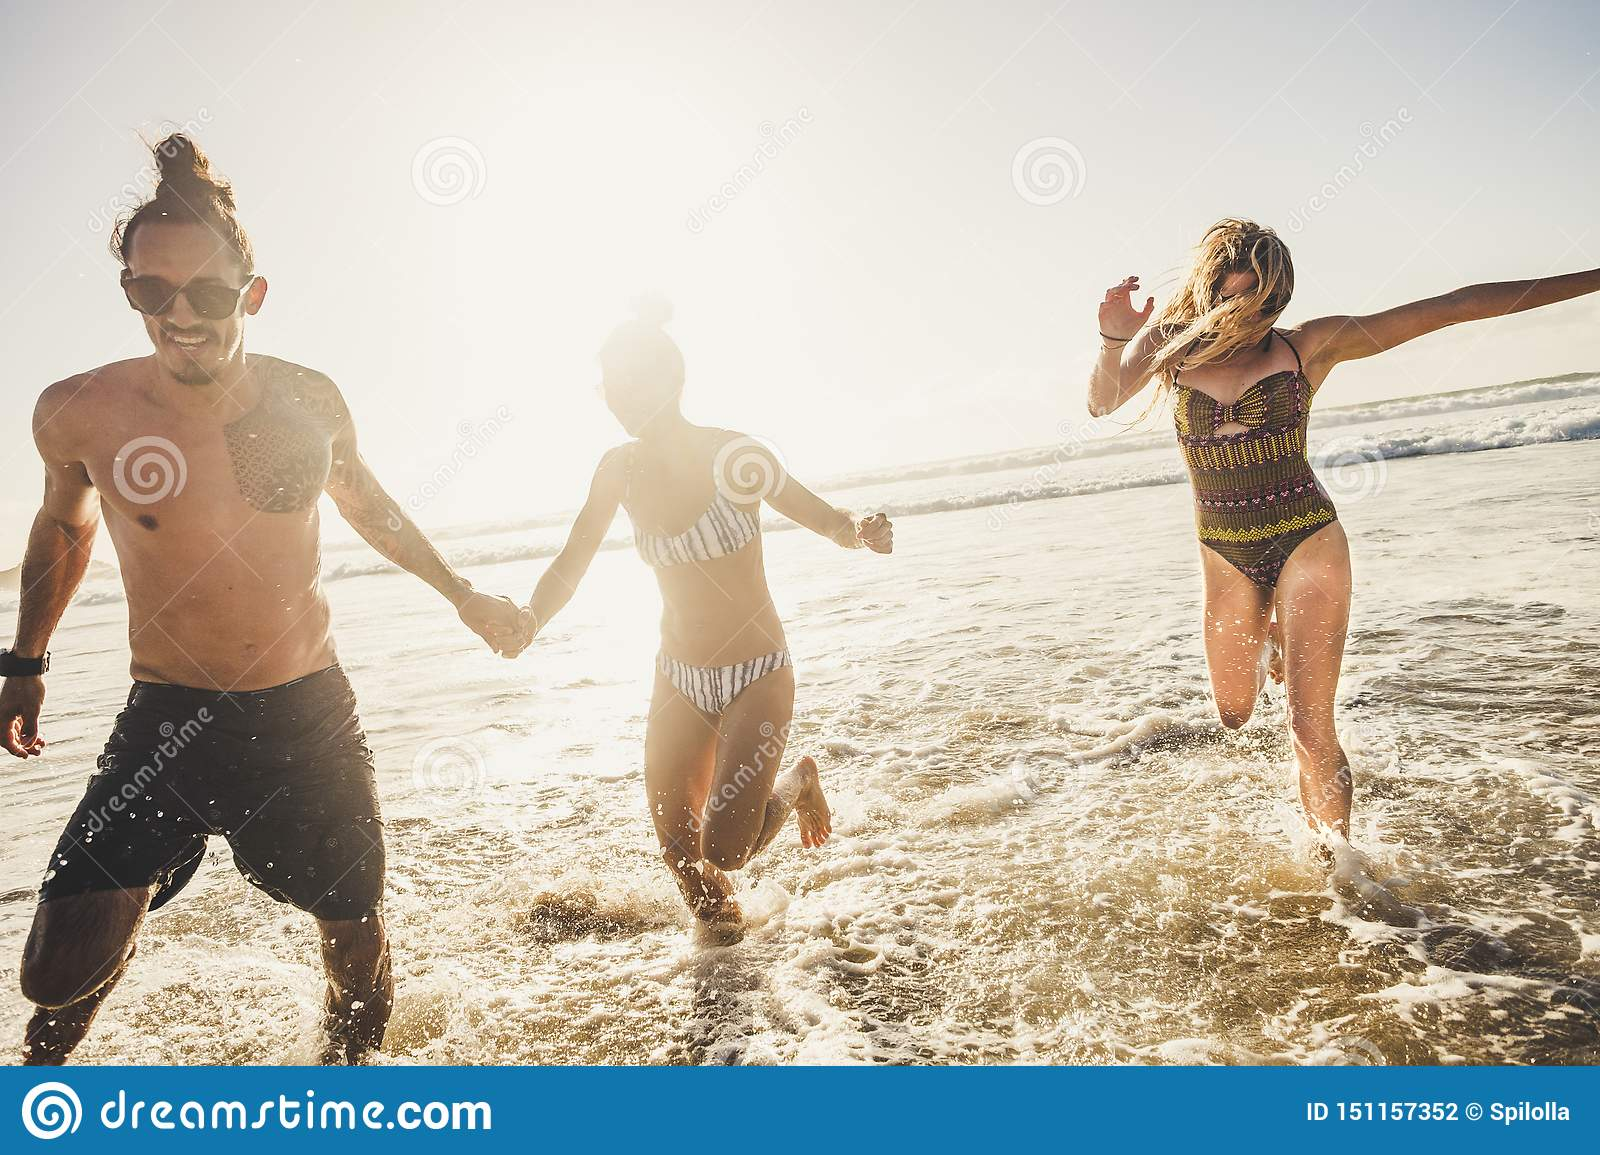 Group of young people friends enjoying with fun the summer holiday vacation running at the beach to the water in playful outdoor